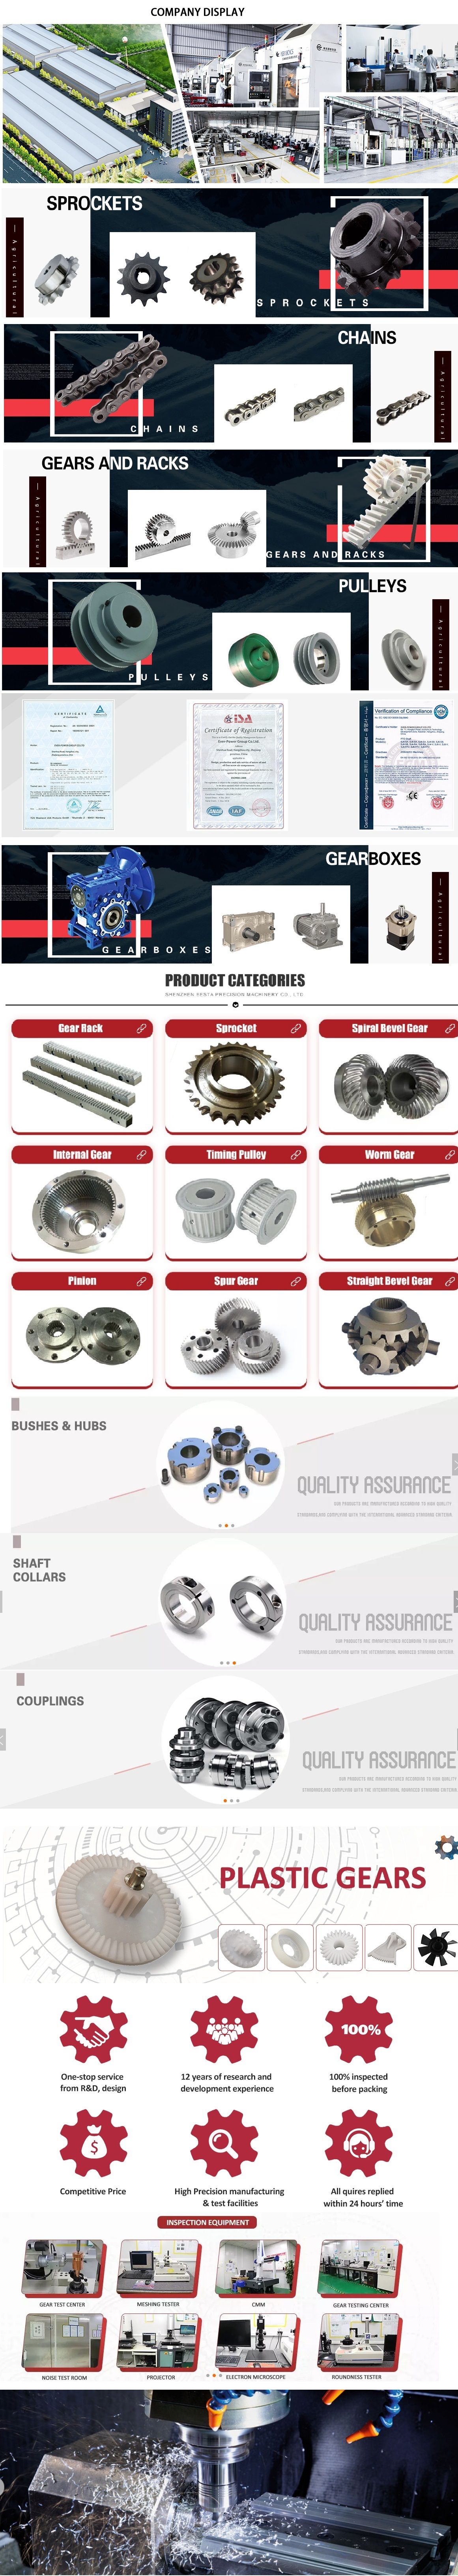 in Seoul Republic of Korea  sales   price   shop   near me   near me shop   factory   supplier Vf Worm Gear Speed Reducer manufacturer   best   Cost   Custom   Cheap   wholesaler